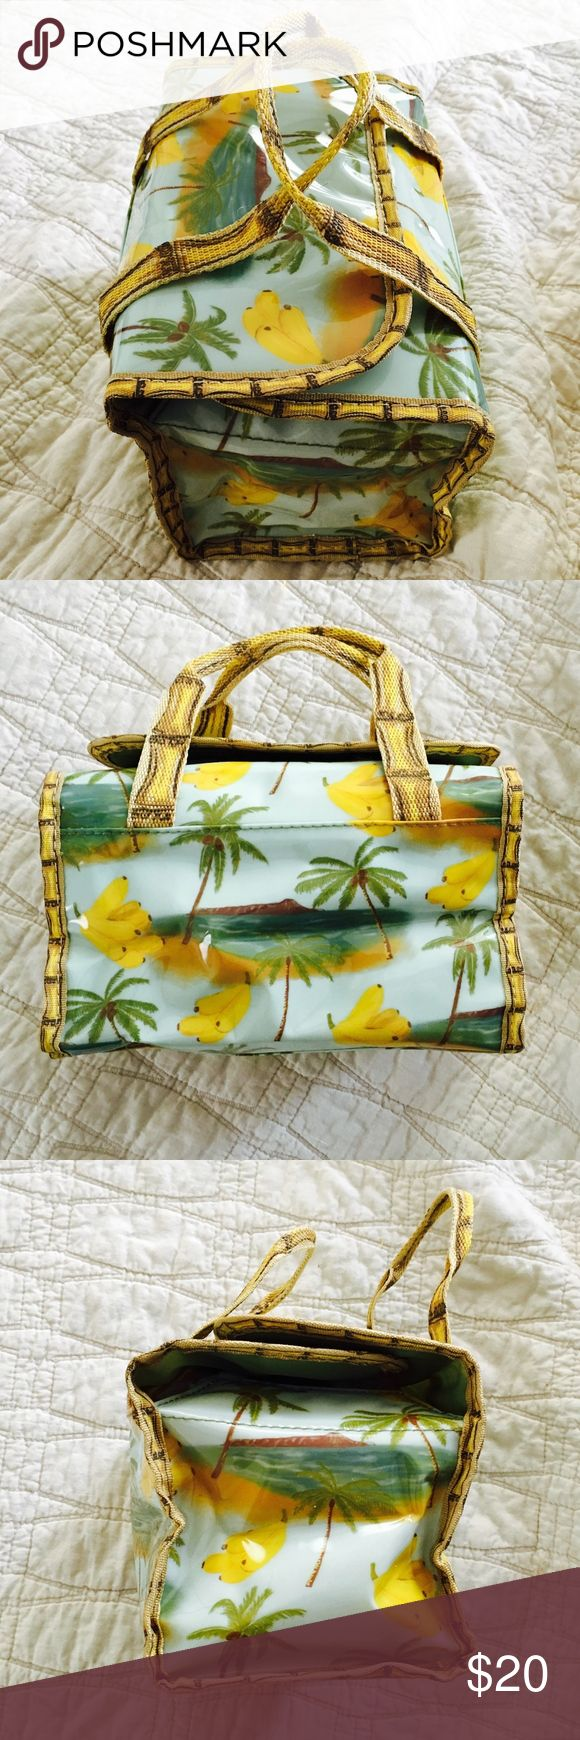 """vintage AVON Bag Really adorable and fun vintage AVON bag.  Can be used to carry lunch, drinks to the beach, makeup, toiletries.  Great for a fun day out or vacation!  Print is of bananas and palm trees set against a blue sky with bamboo print trim and handles.  Gets you in the mood, right?  8"""" x 5"""".  Has a few tiny little nicks but overall condition is new. Avon Bags Cosmetic Bags & Cases"""